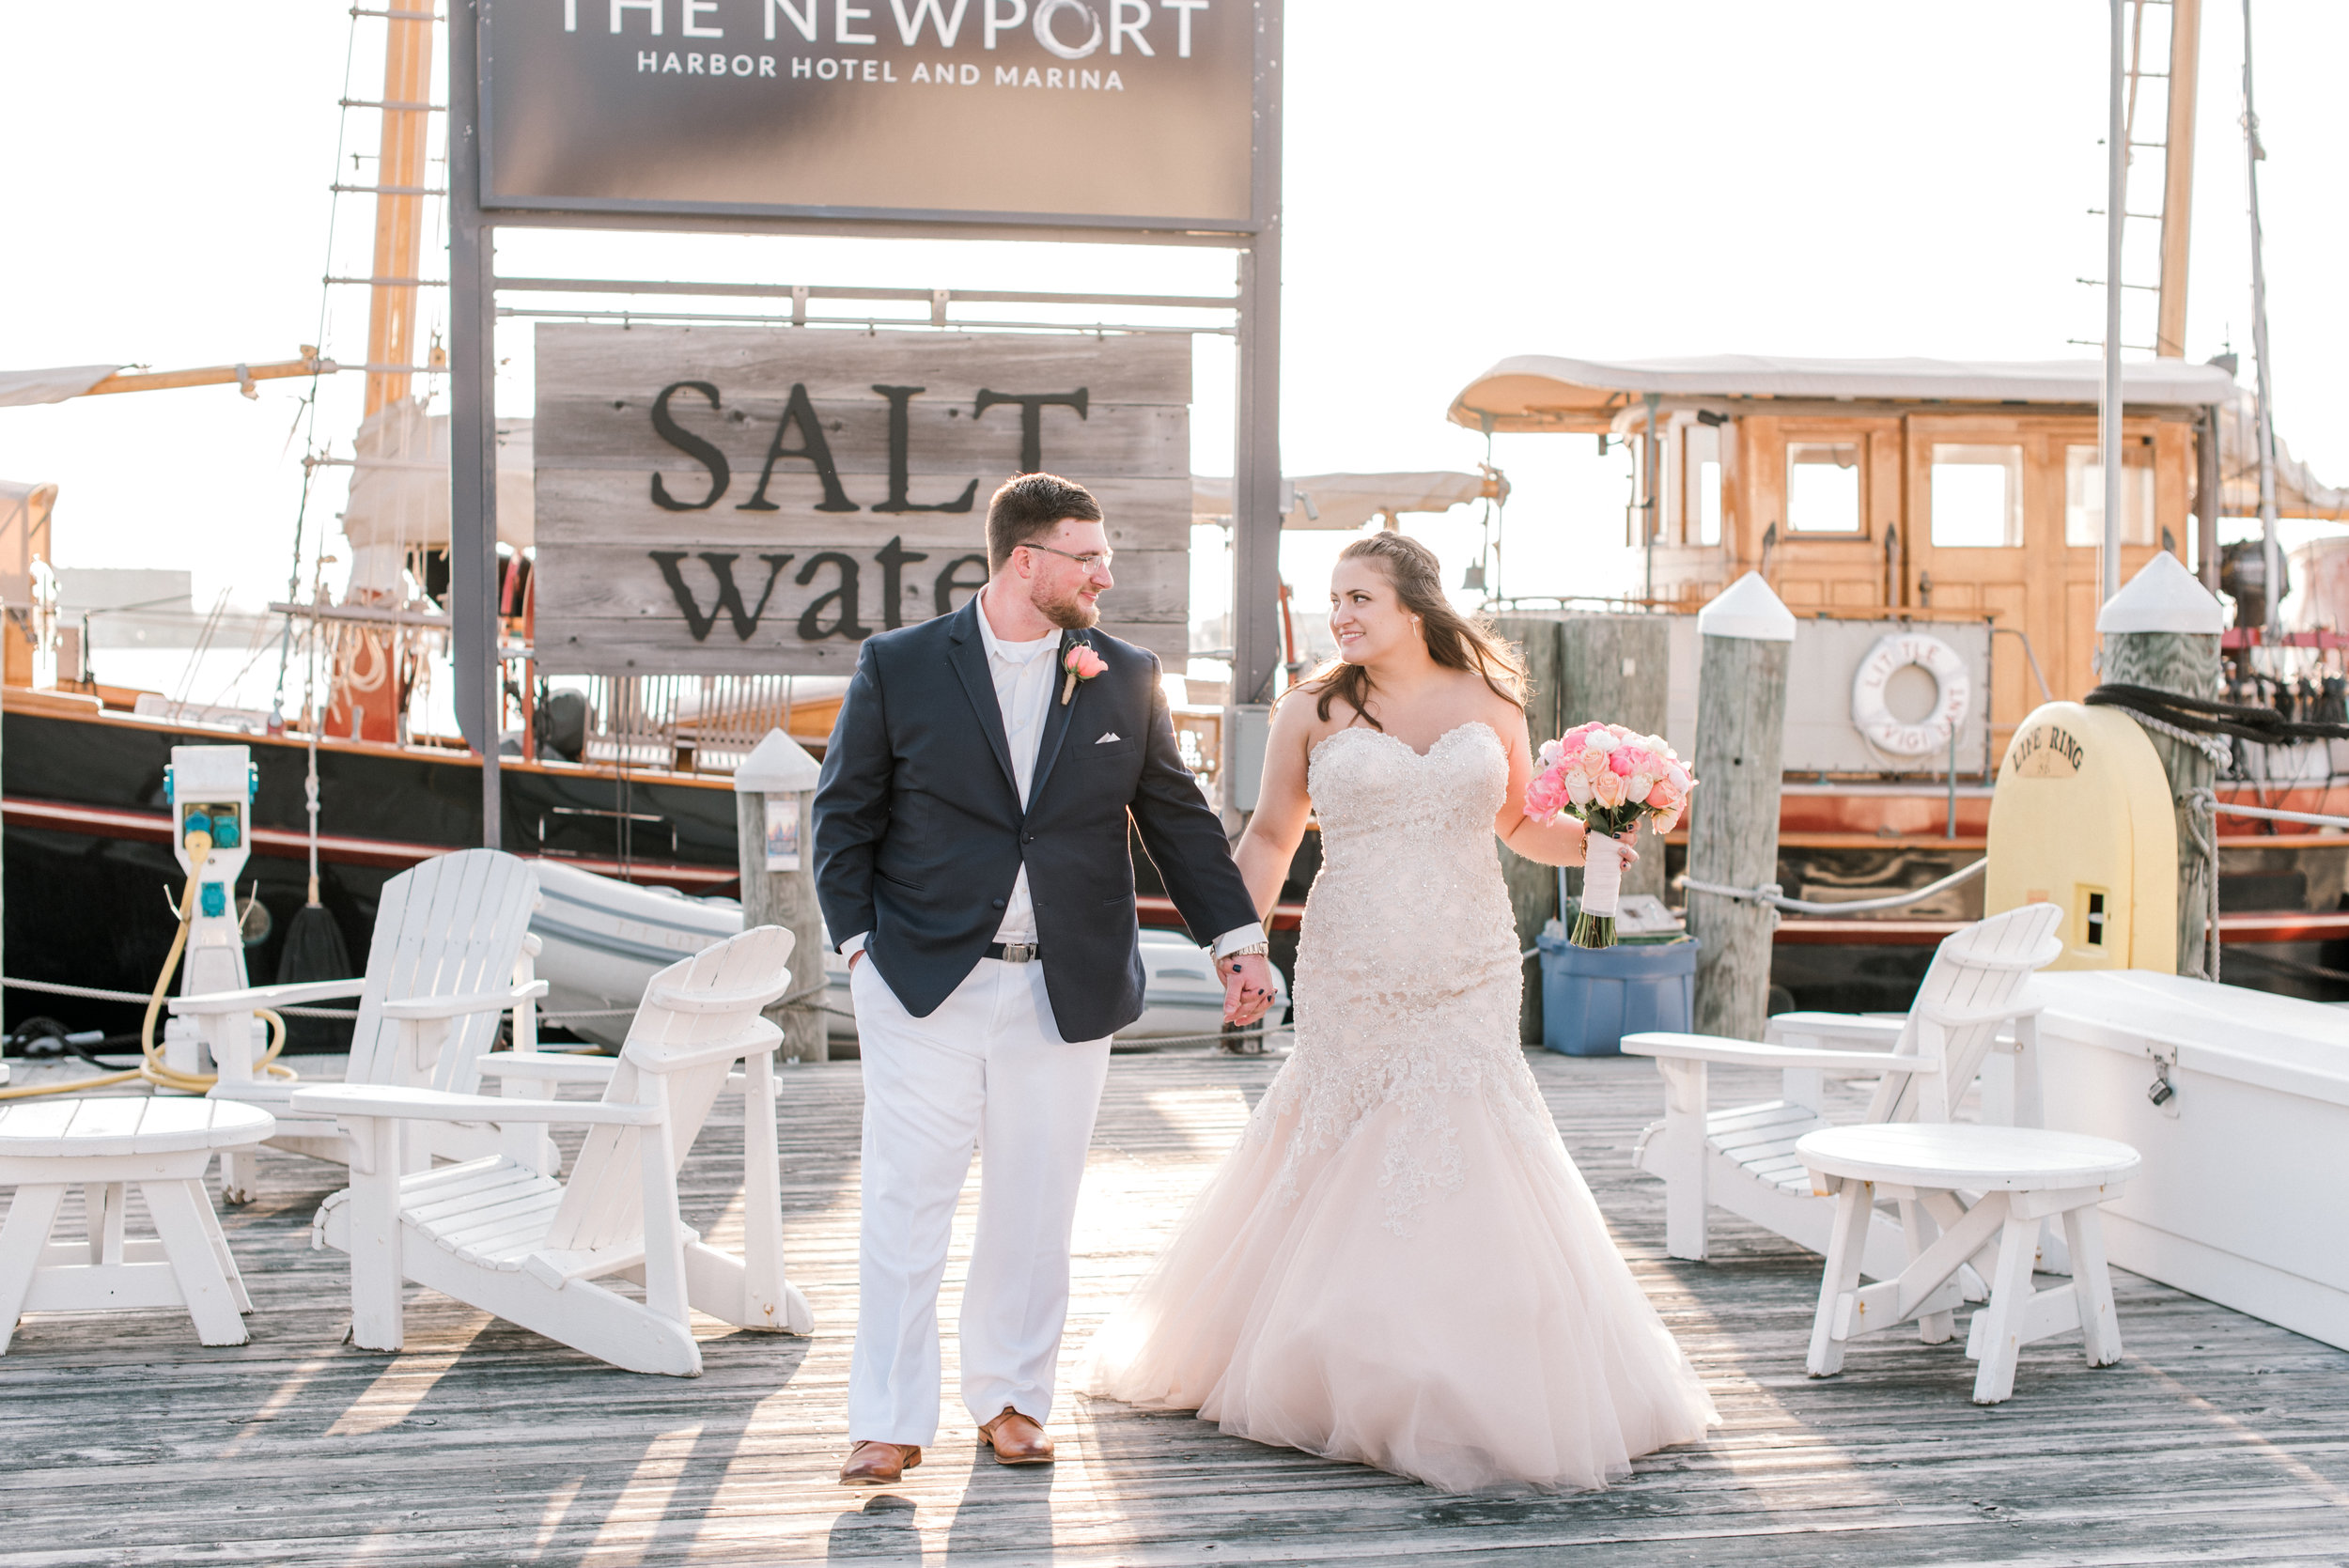 Newport Wedding Photographer Newport Harbor Hotel Sunset Bride and Groom Alicia Ann Photographie Dock 2.jpg